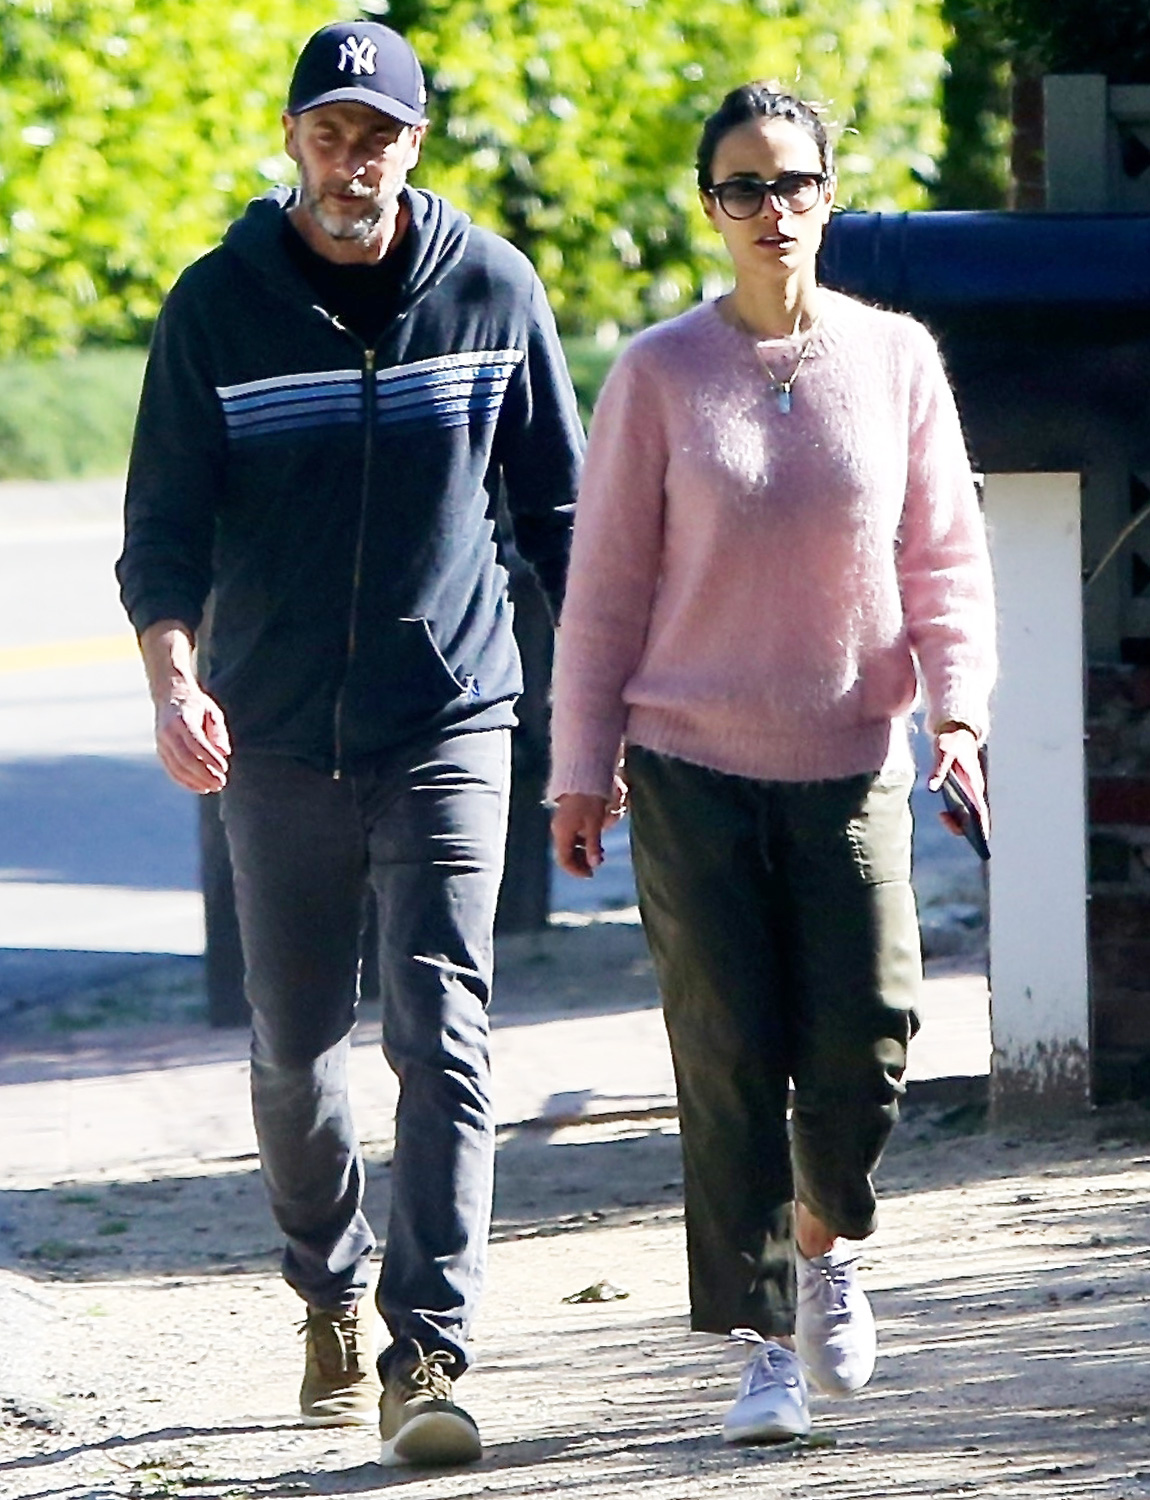 Jordana Brewster Goes Walkies with Husband